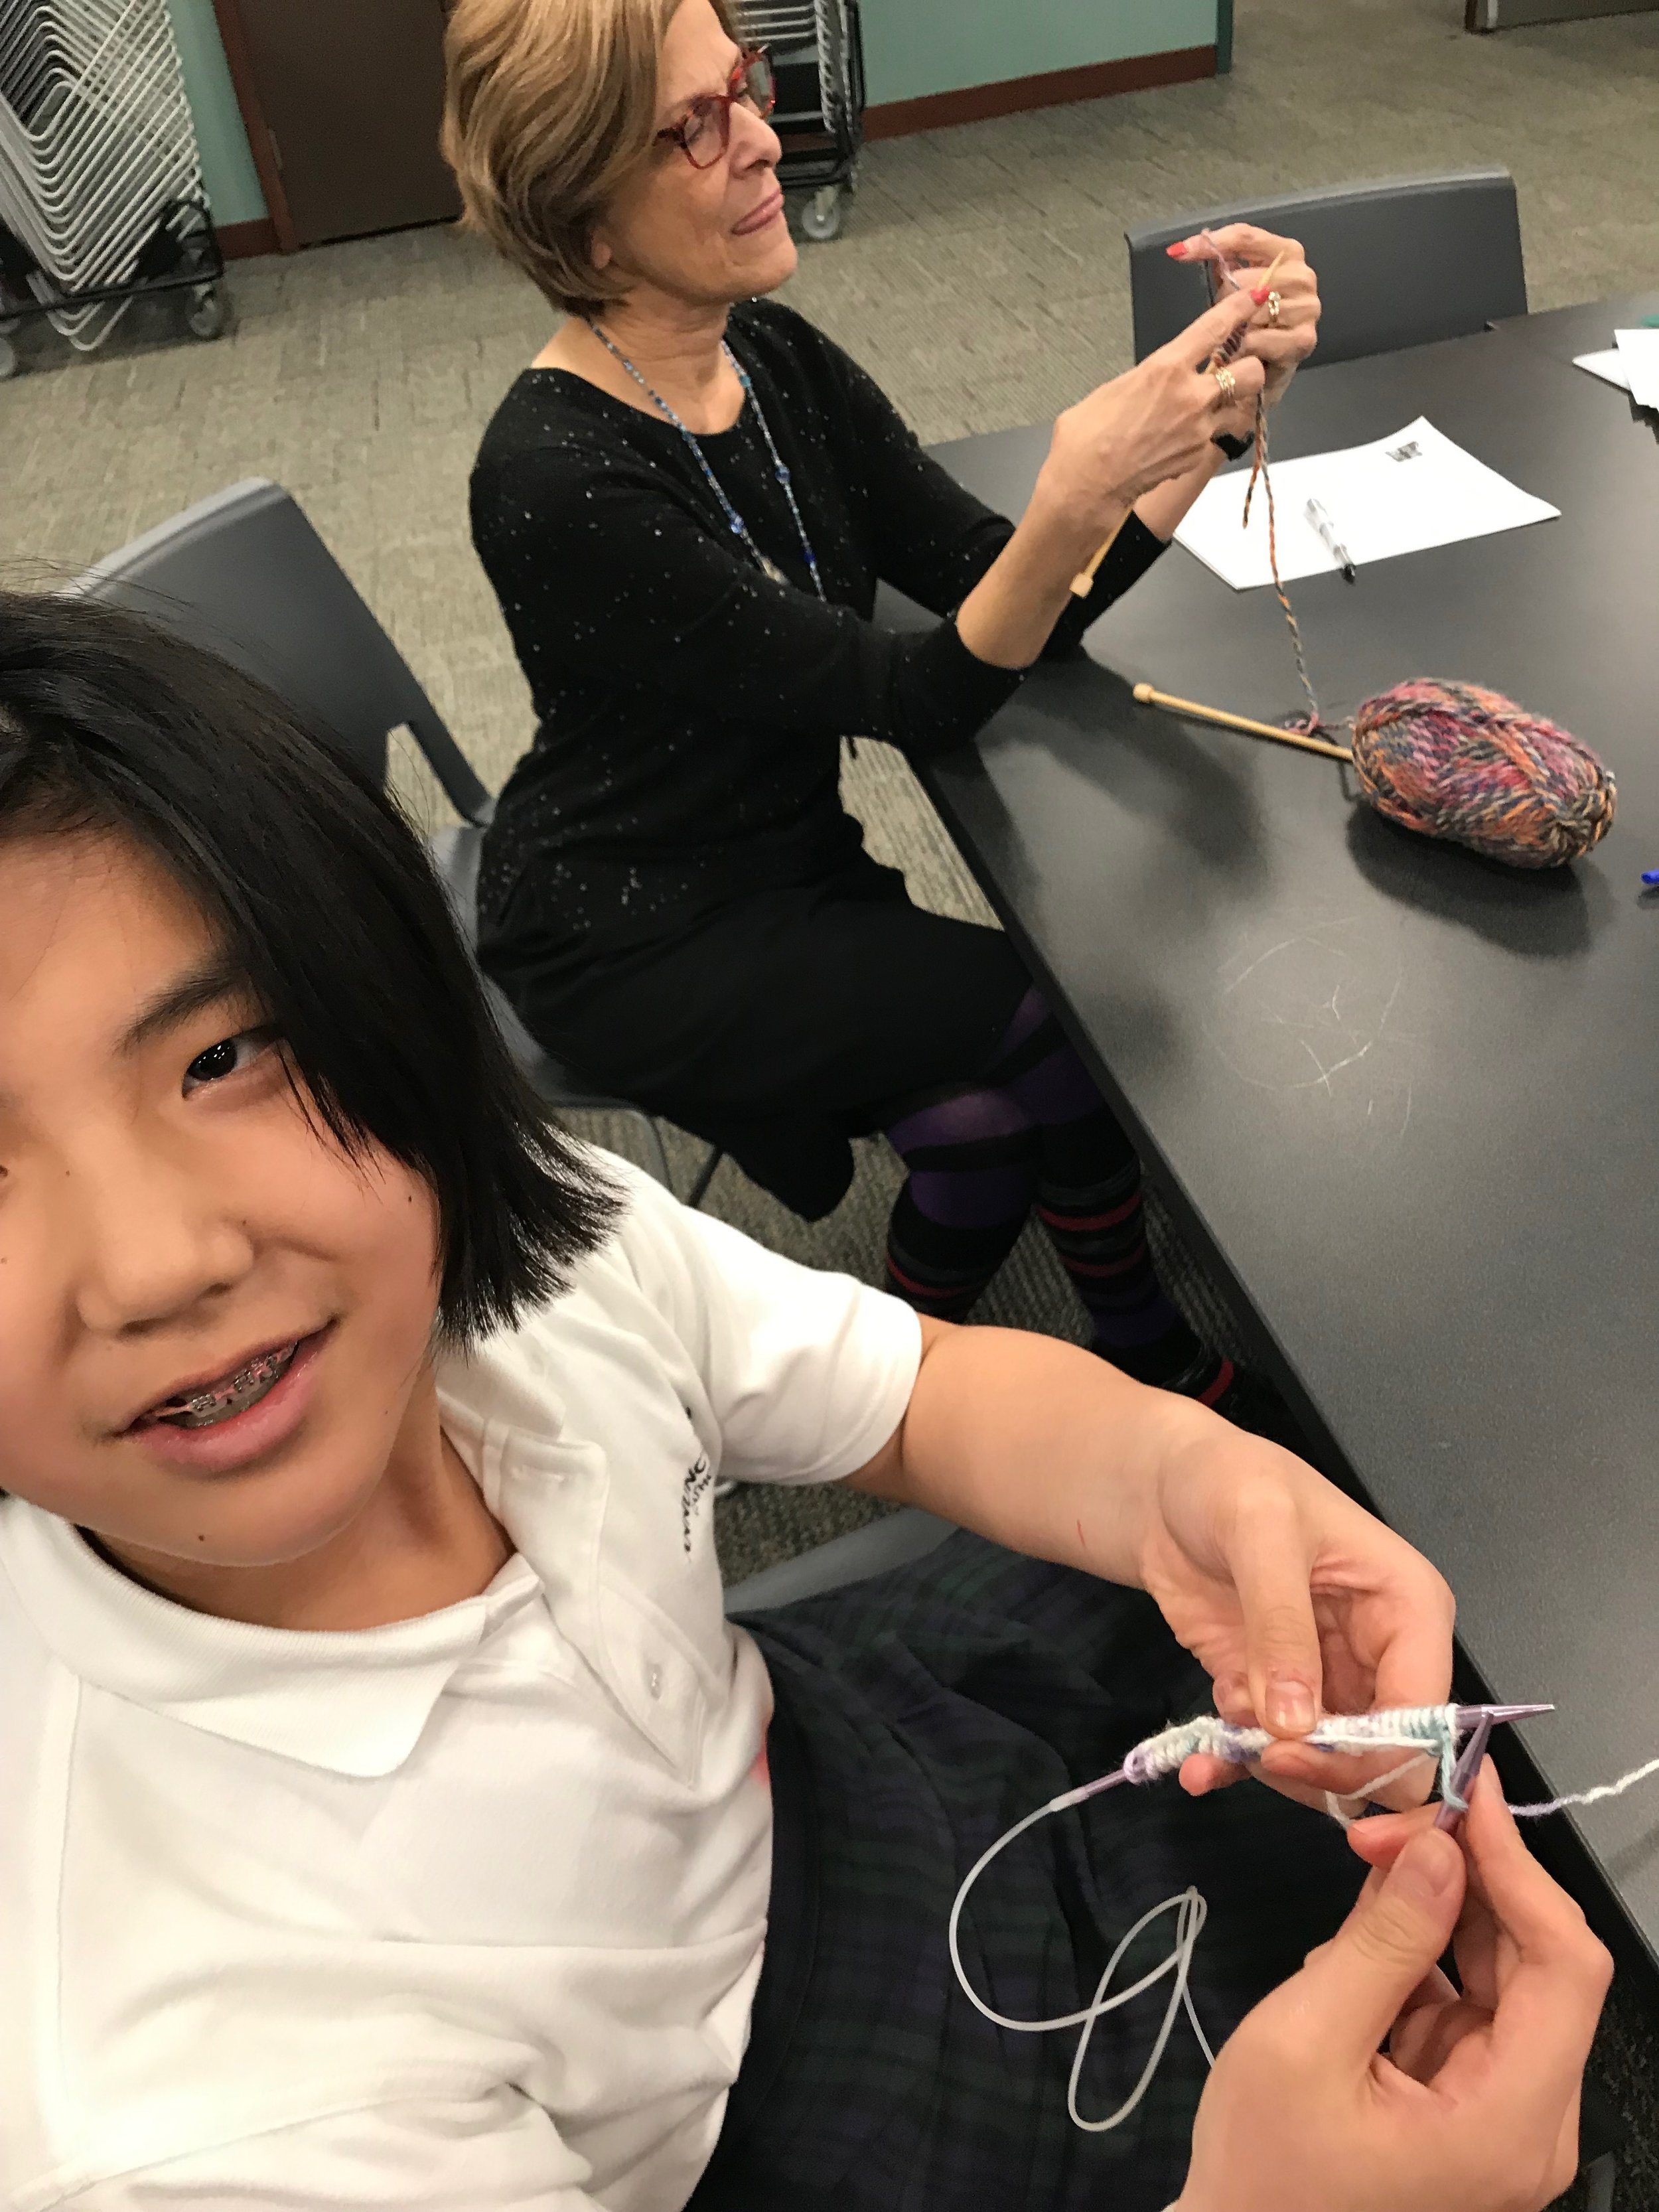 Librarian Ginger and LitKnitter Izzy knitting together at the first LitKnit circle session this week at Washburn Library in South Minneapolis.